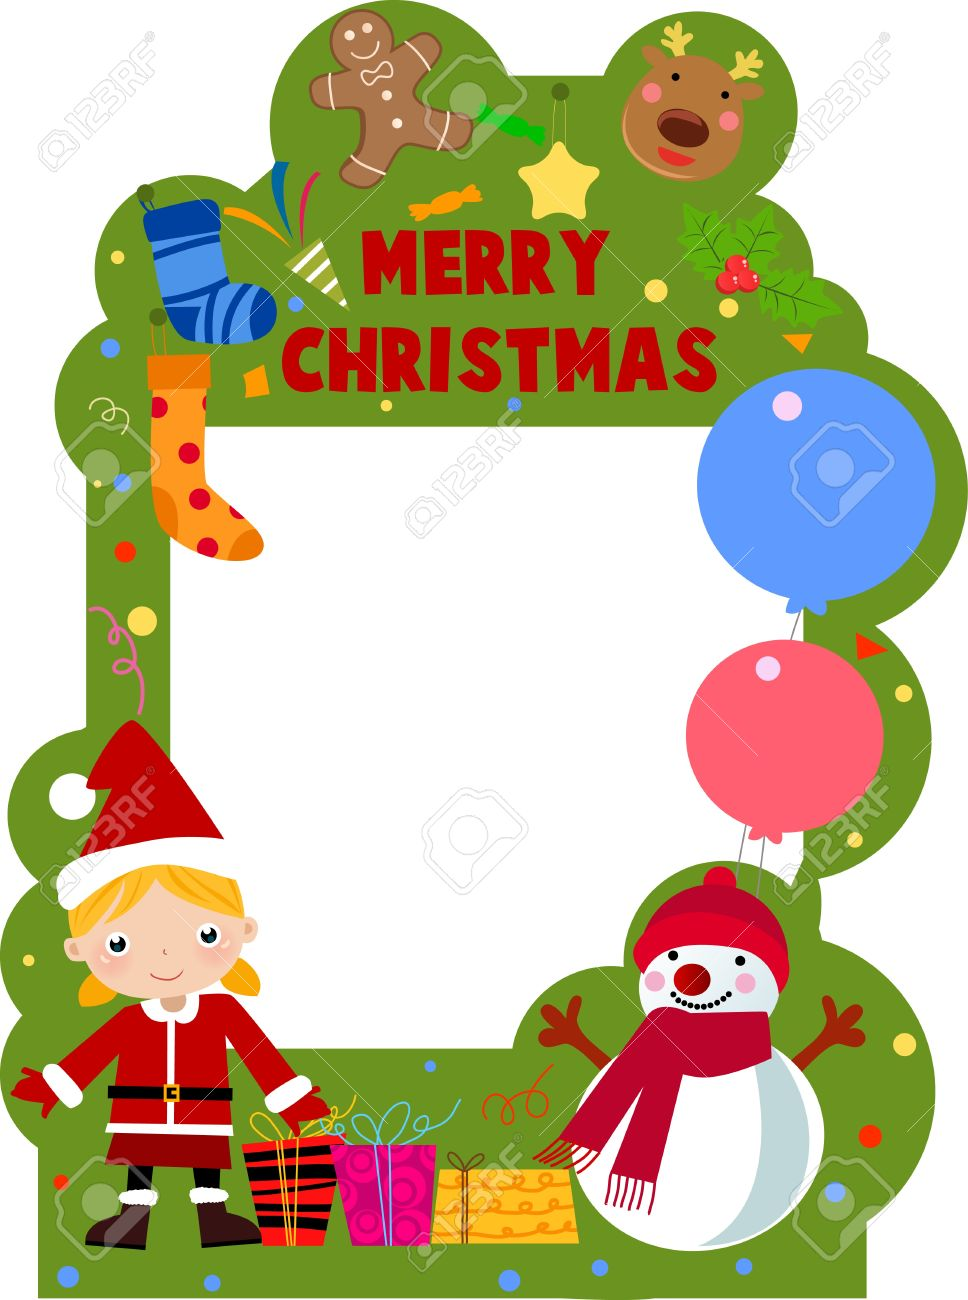 Merry Christmas Frame Royalty Free Cliparts, Vectors, And Stock ...